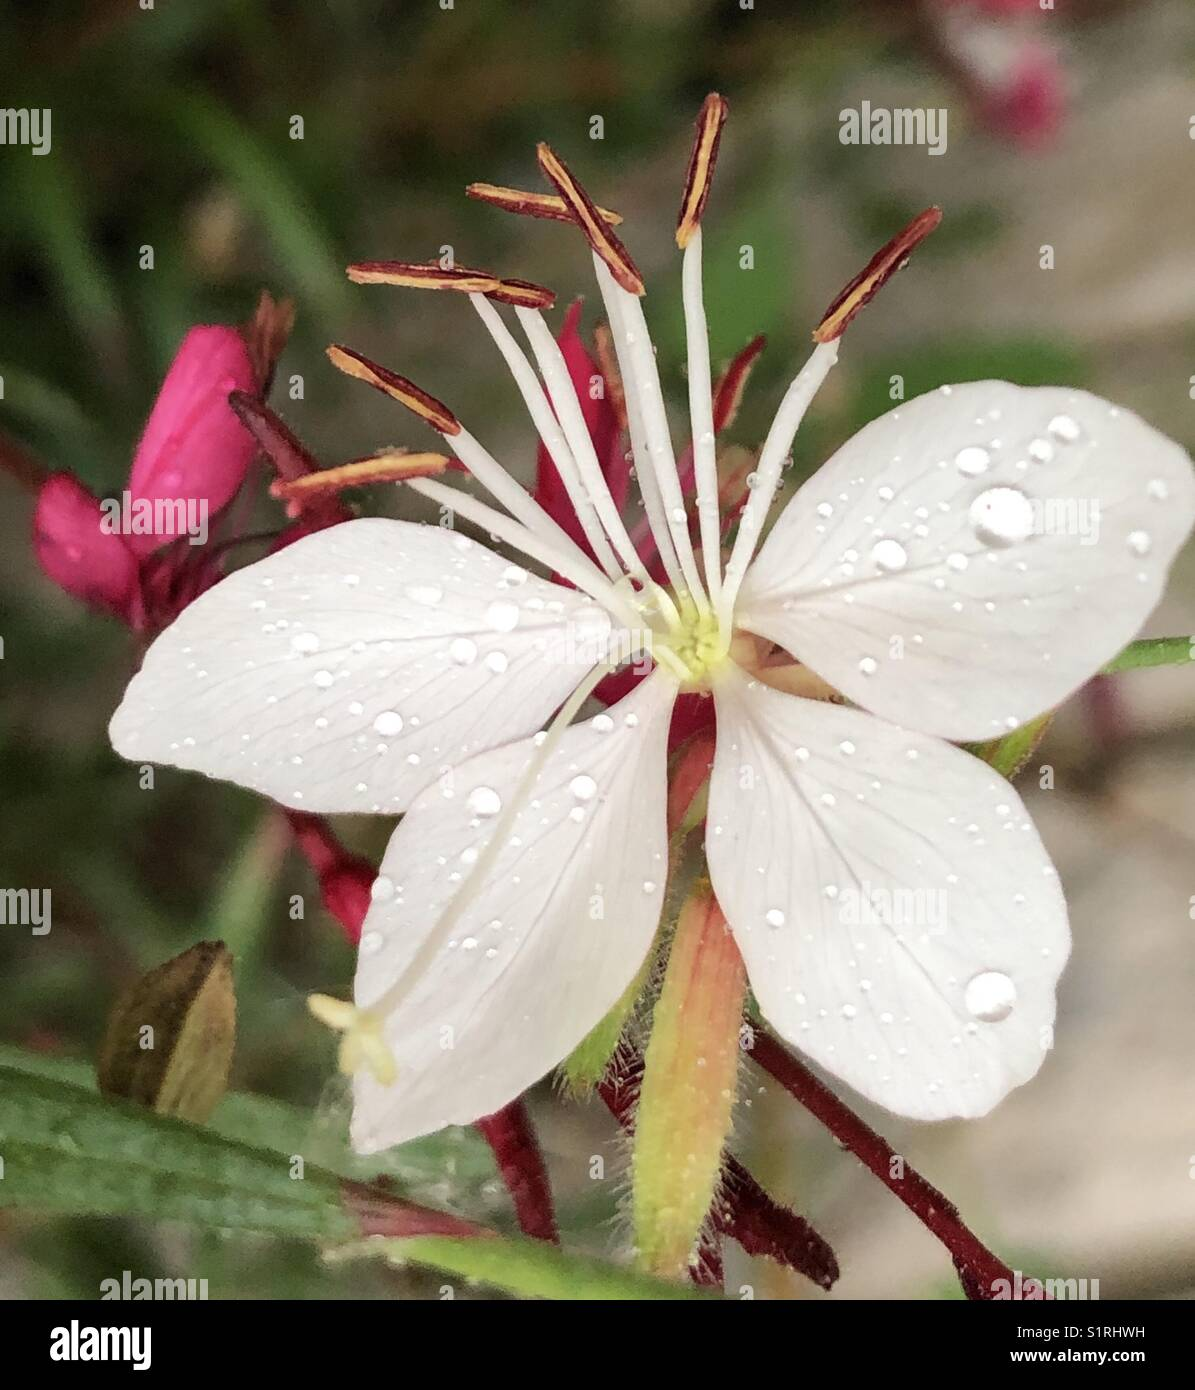 Gaura lindheimeri 'Whirling Butterflies' Bee Blossom perennial flower closeup with water droplets - Stock Image